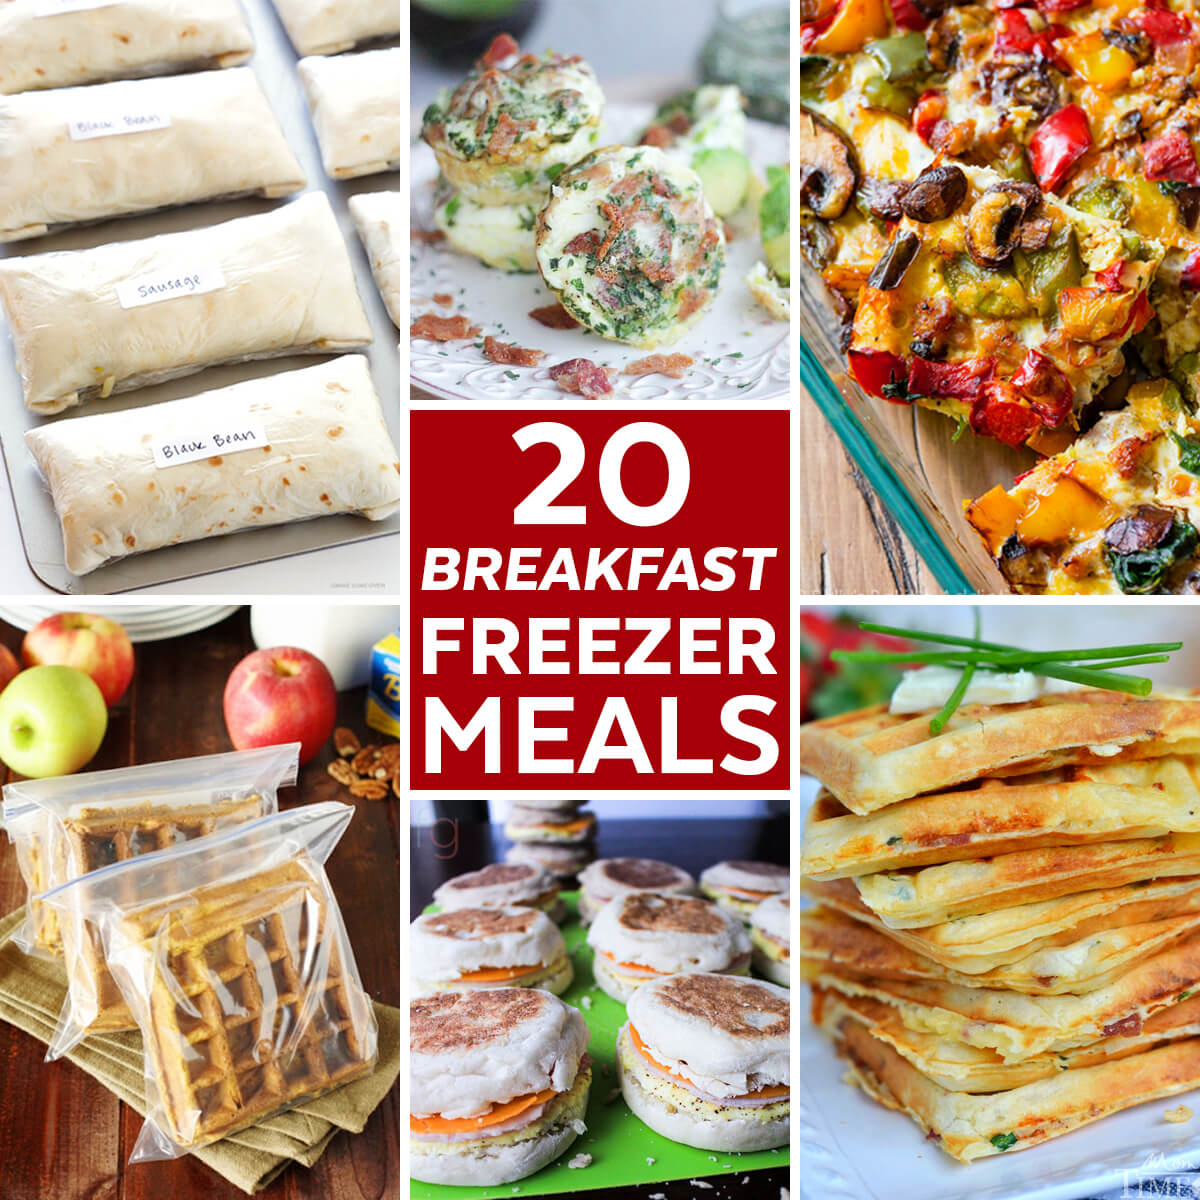 Compilation of photos showing different breakfasts that work well for storing in the freezer.